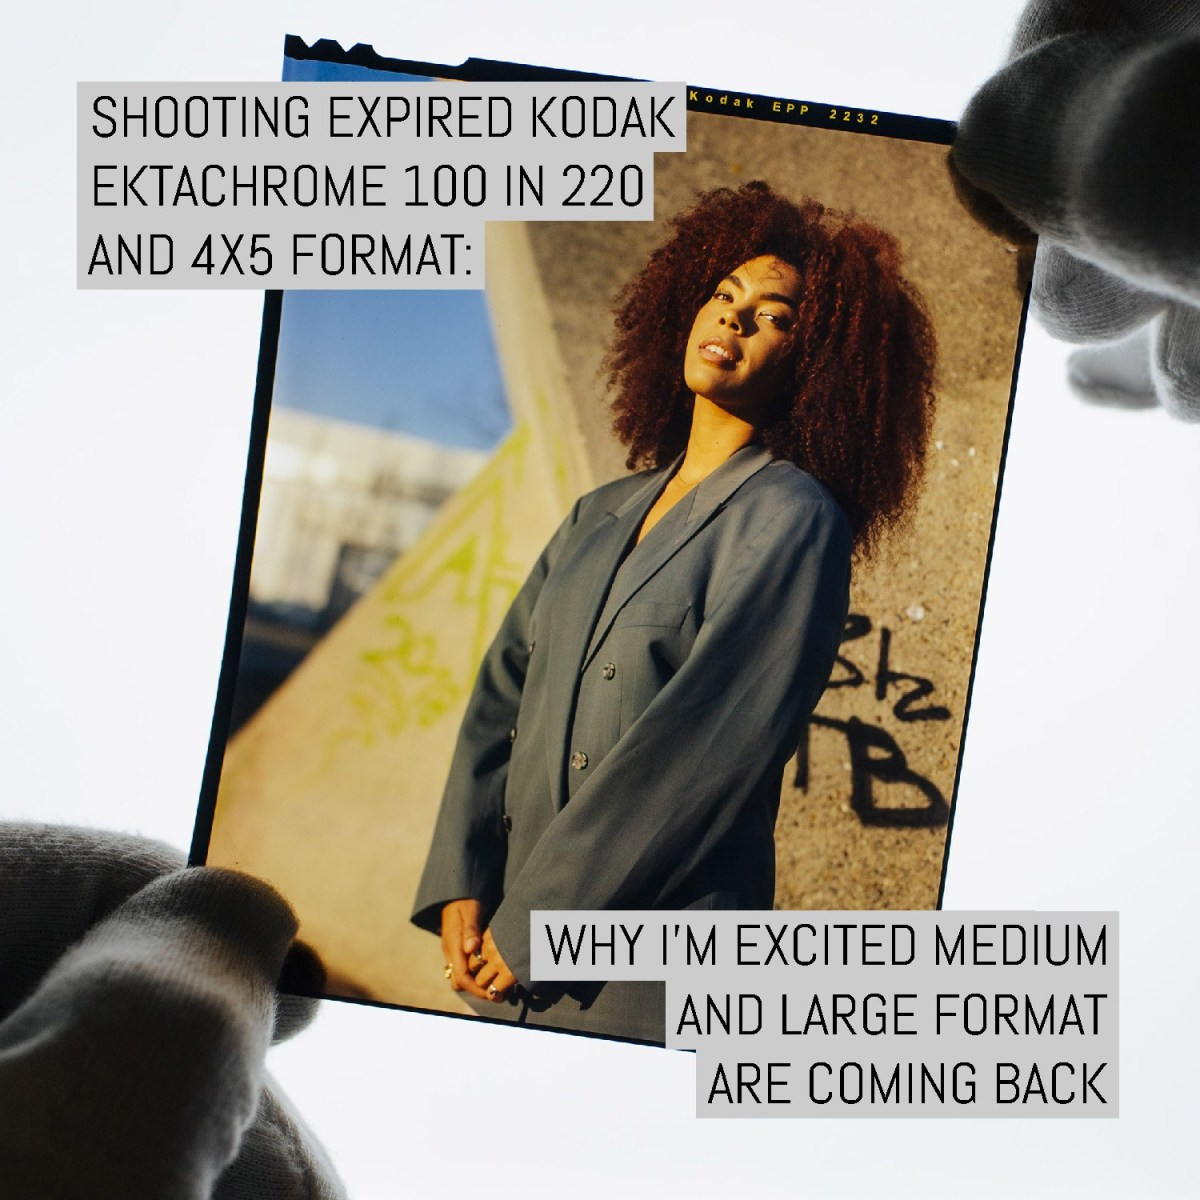 Shooting expired Kodak EKTACHROME 100 in 220 and 4x5 format: why Im excited medium and large format is coming back